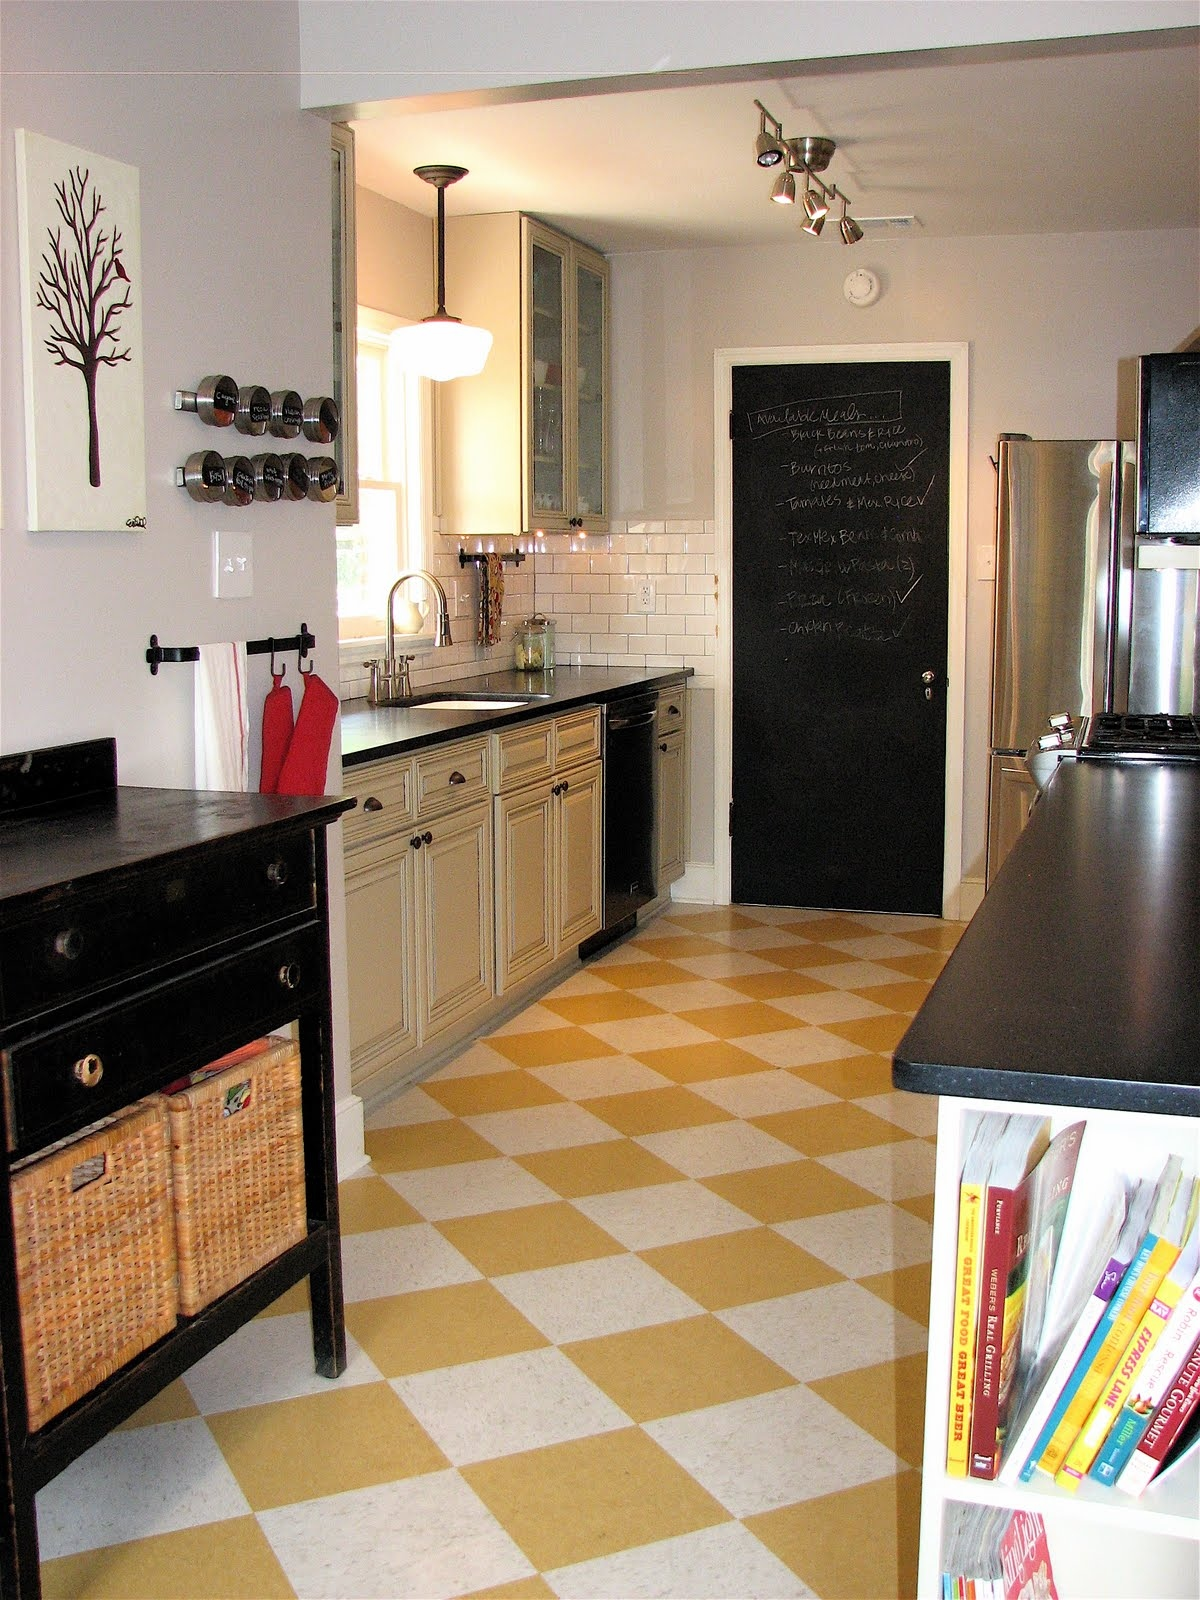 18 beautiful examples of kitchen floor tile 5 yellow chess dailygadgetfo Gallery